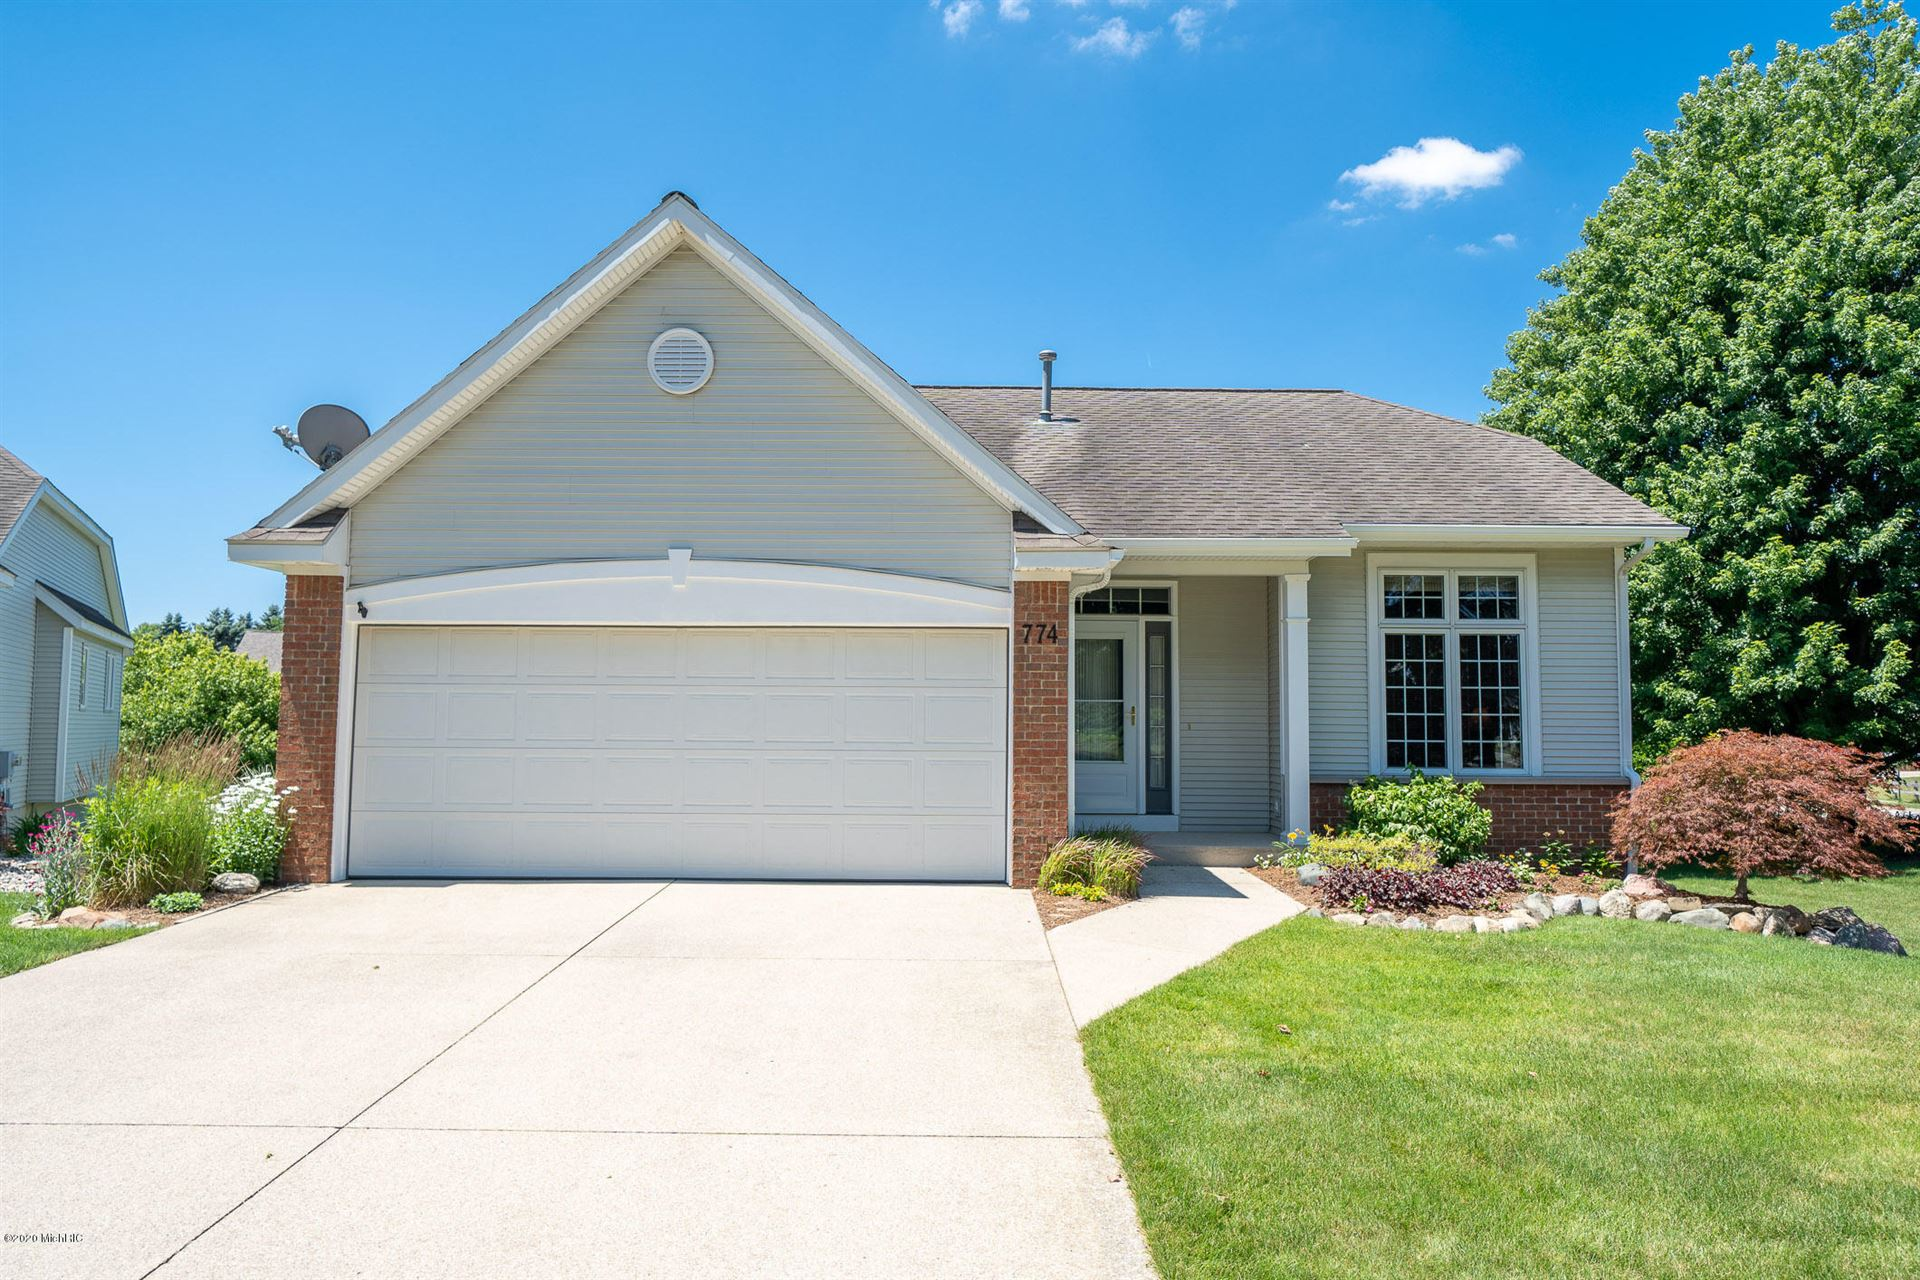 774 Holly Creek Drive #1, Holland, MI 49423 - #: 20025754